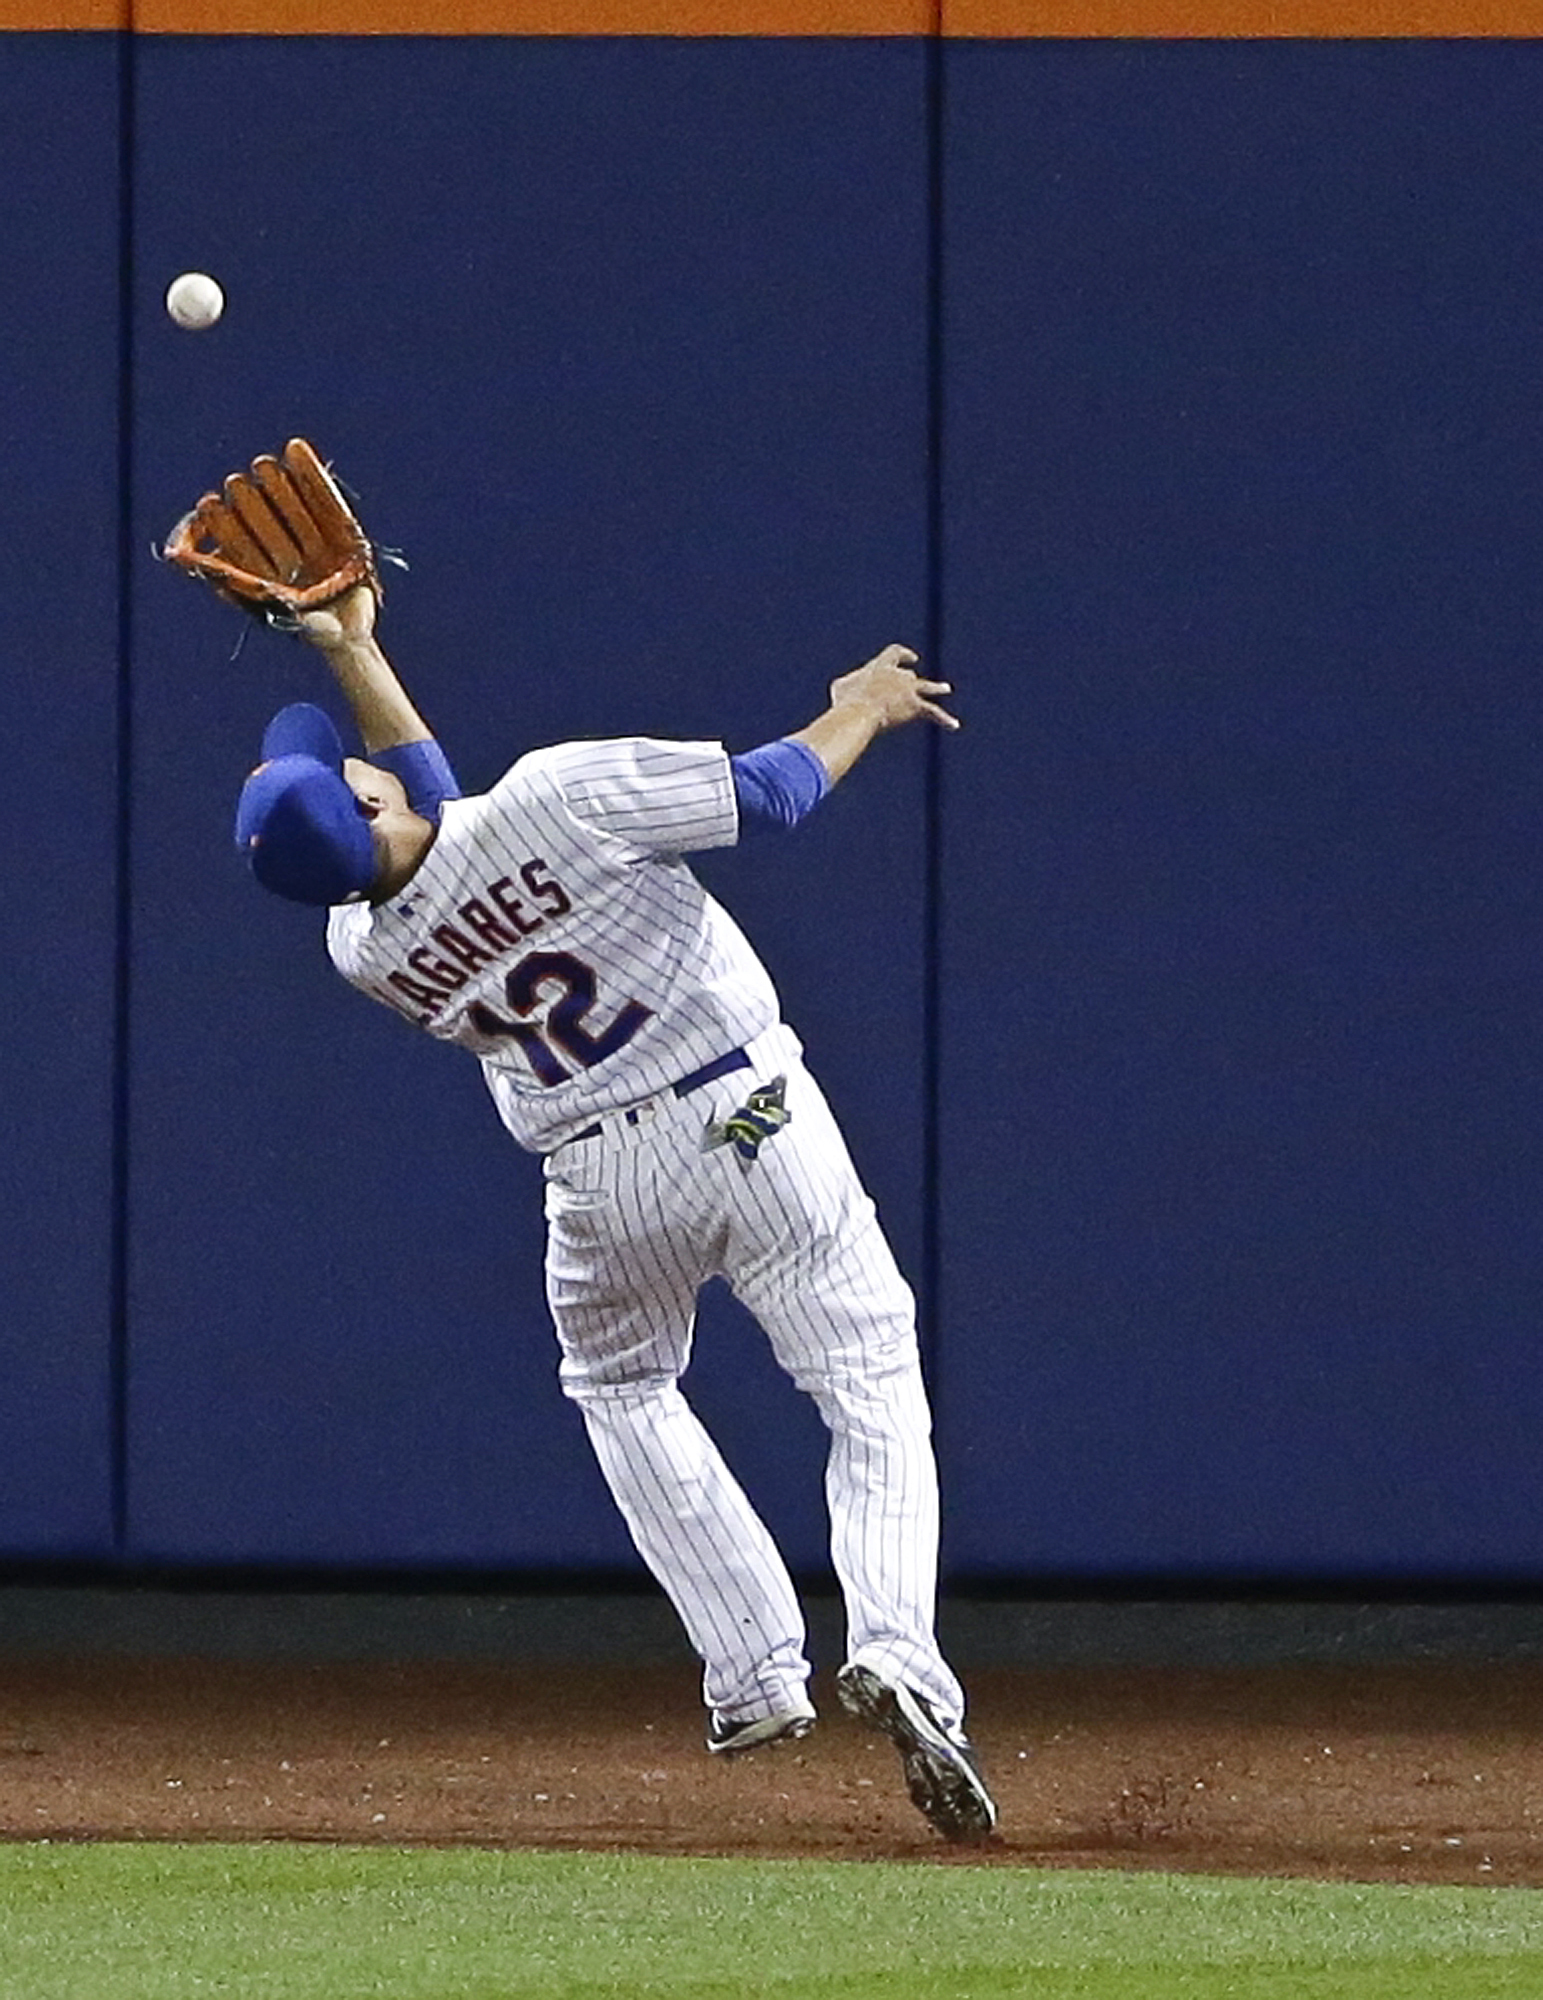 New York Mets center fielder Juan Lagares (12) catches a ball hit by Washington Nationals' Daniel Murphy for an out during the seventh inning of a baseball game Wednesday, May 18, 2016, in New York. Ben Revere tagged up to score on the play. (AP Photo/Fra